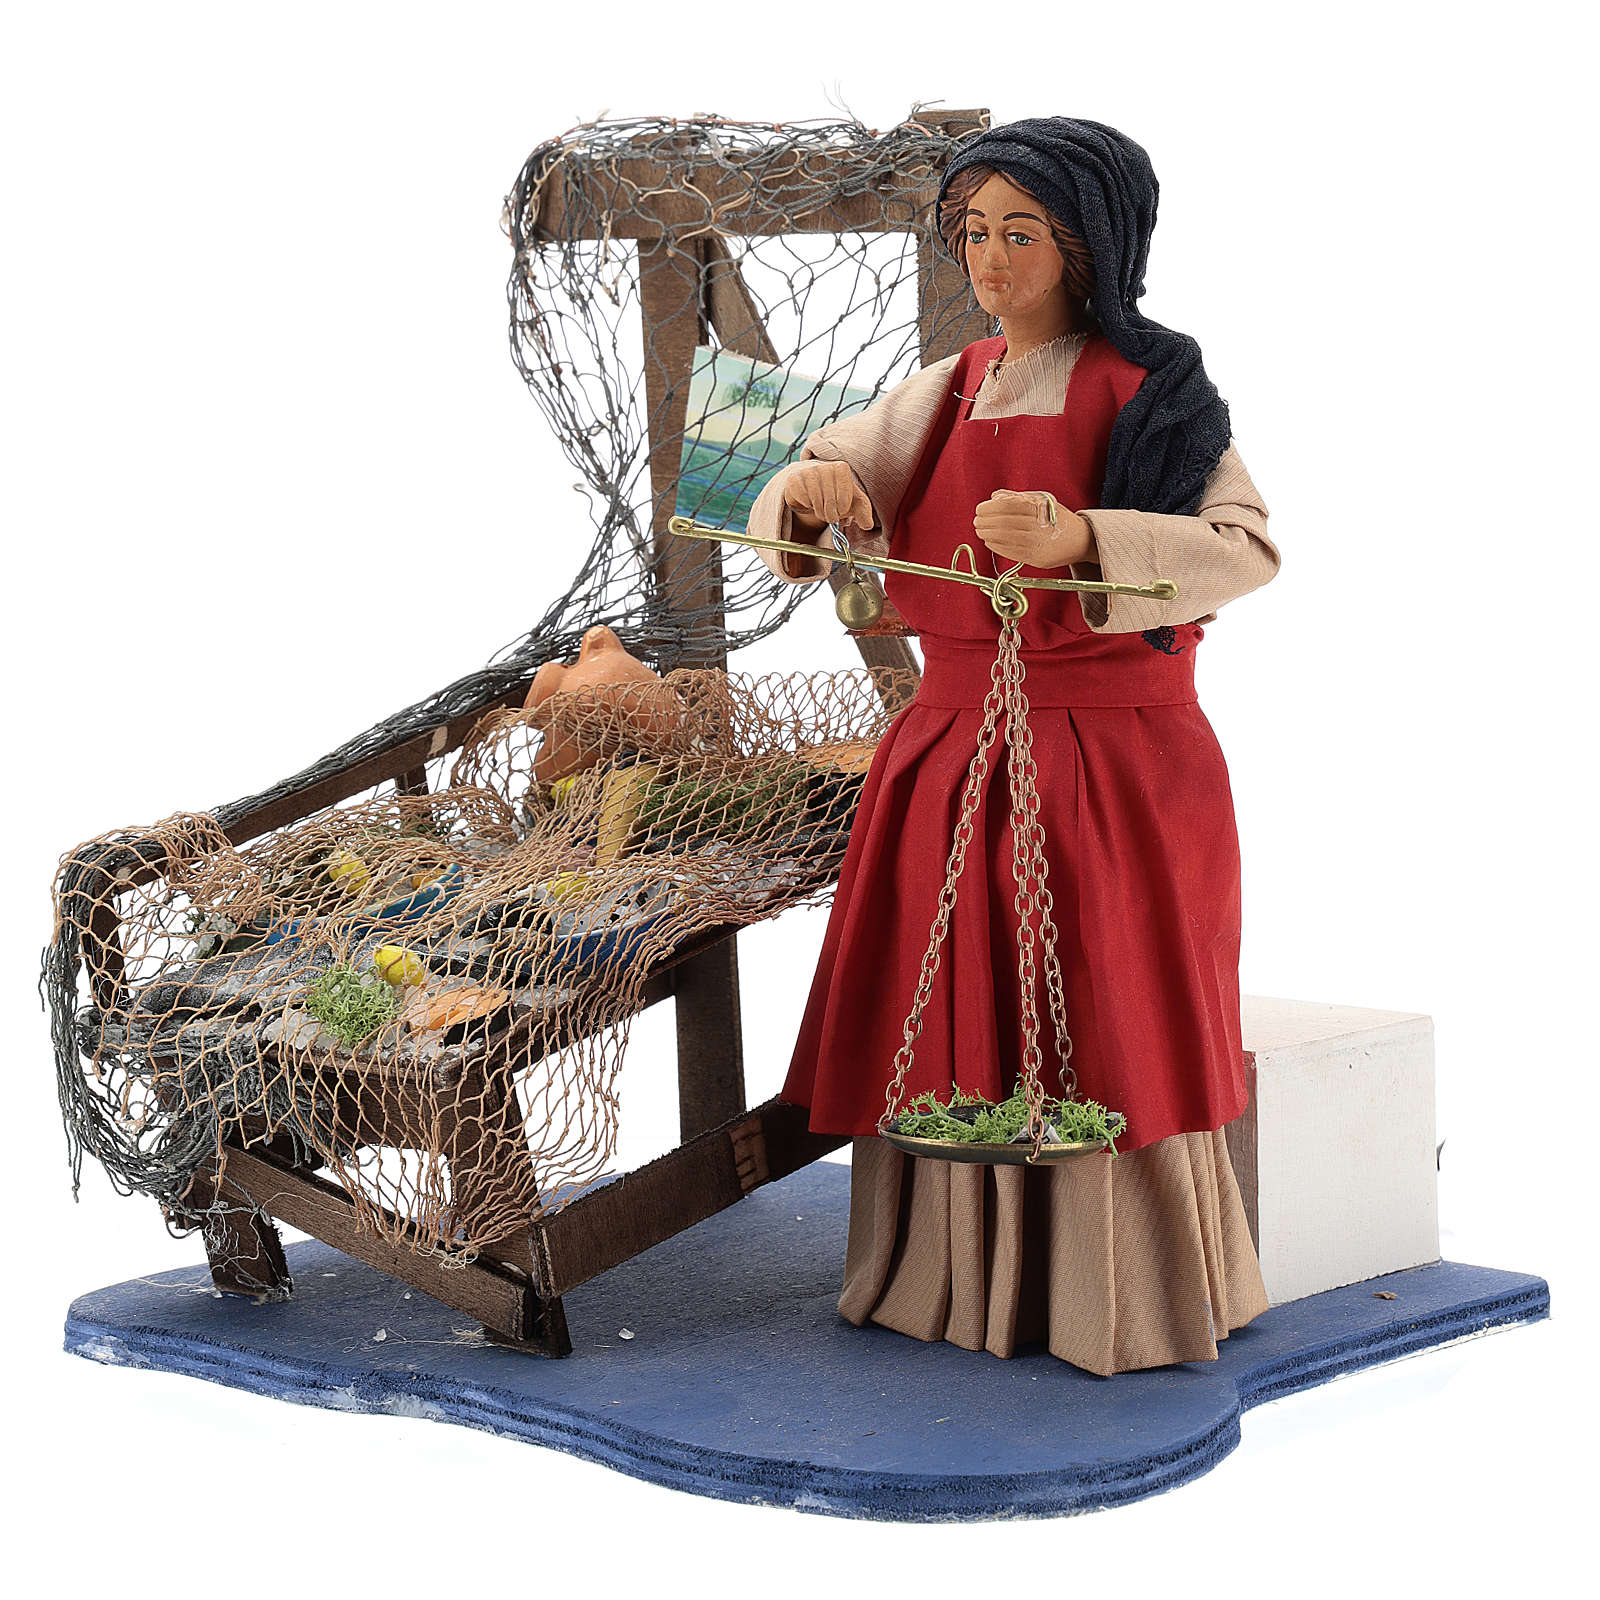 Moving fisher woman with scale for Neapolitan nativity scene 4